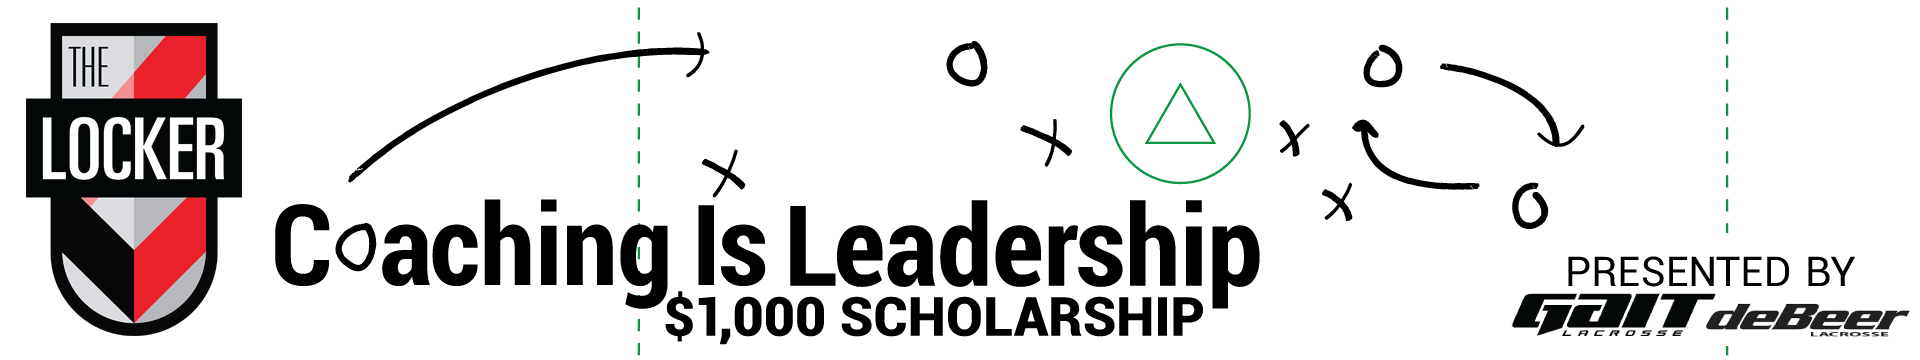 is leadership scholarship essay co coaching is leadership 1 000 scholarship essay co